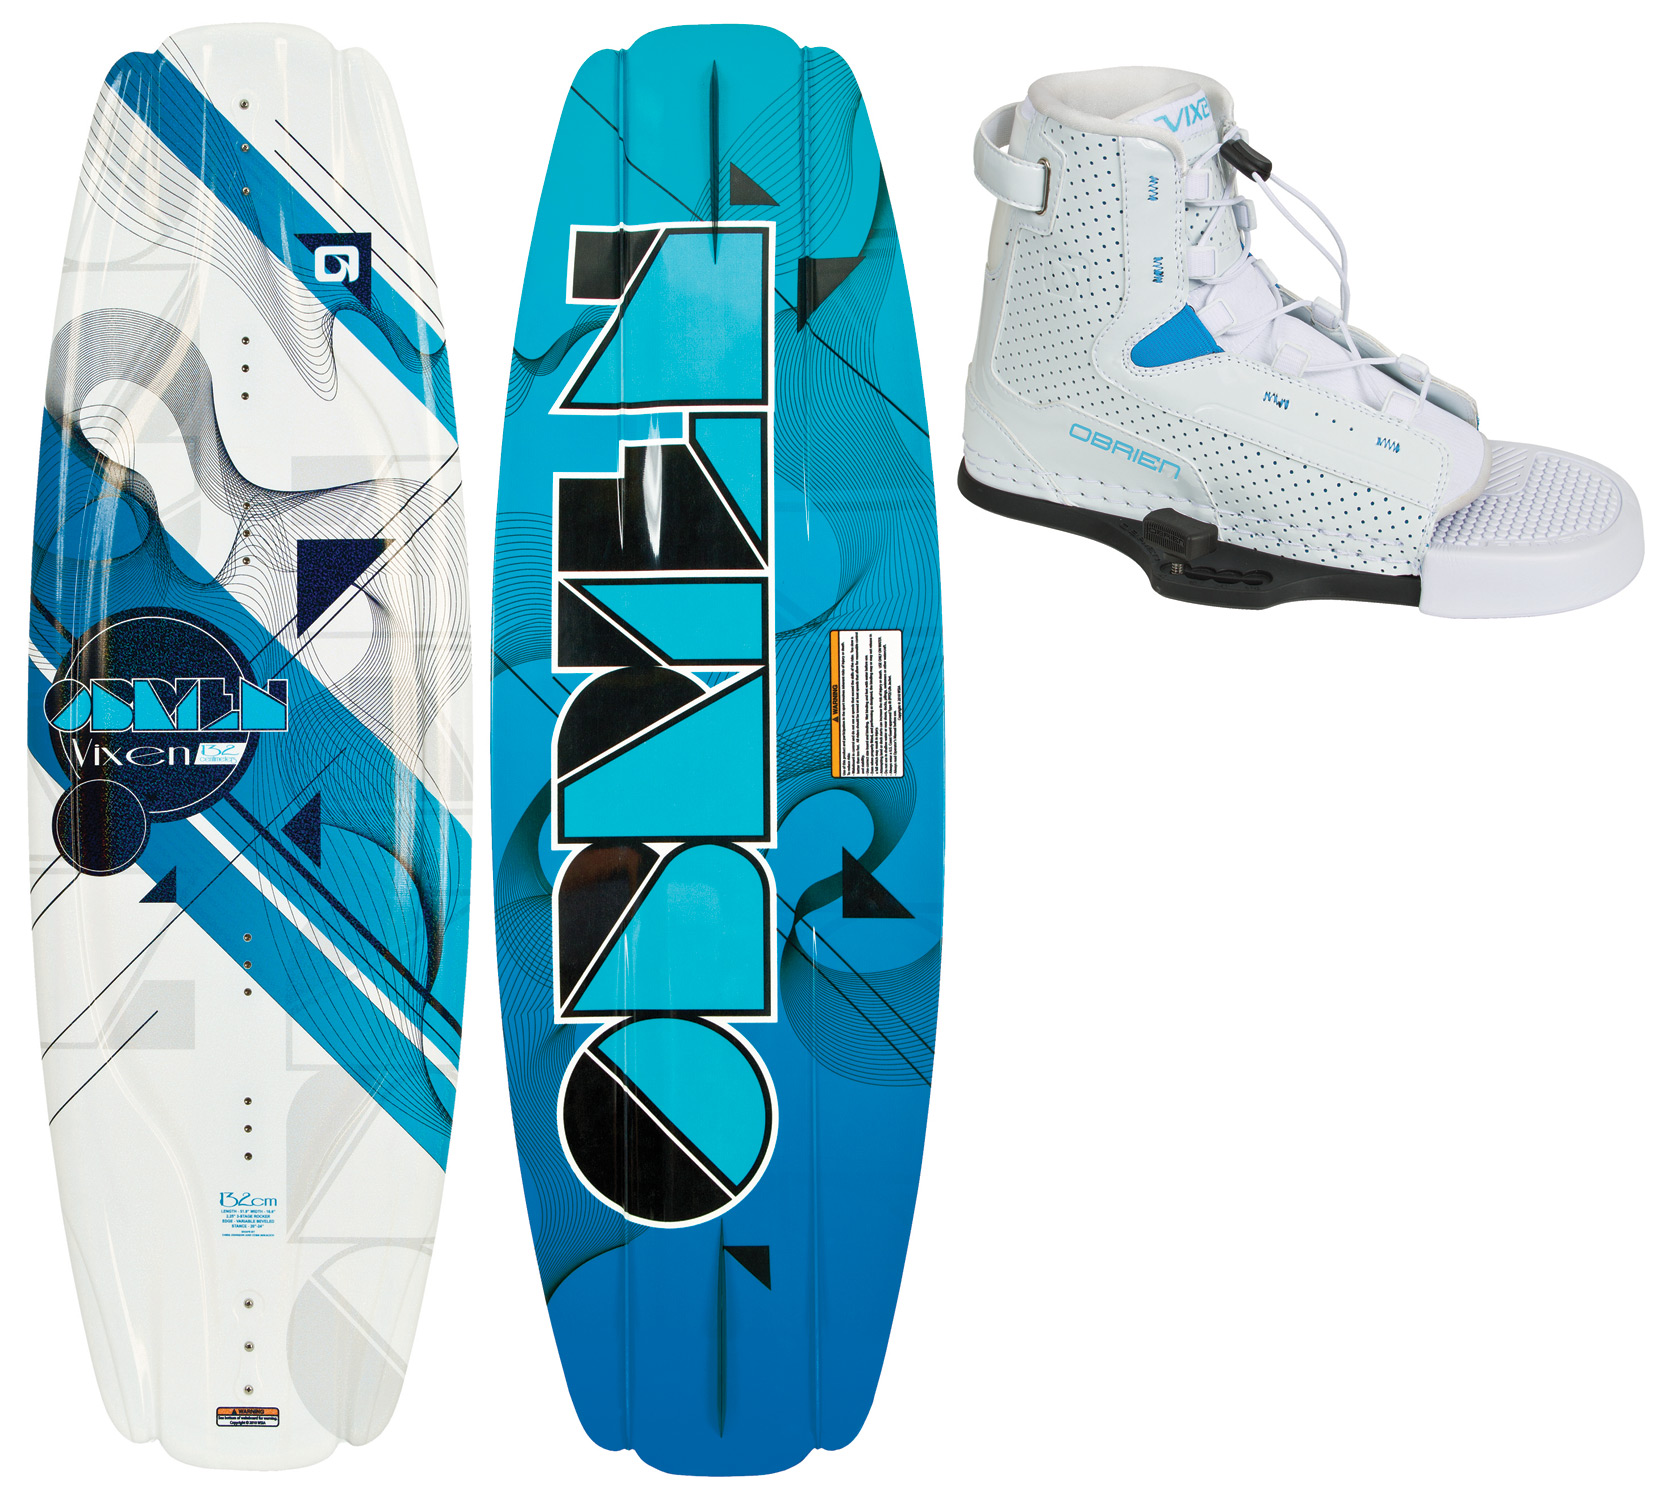 "Wake The Vixen has all the features of our justly famous Clutch board, tuned for the ladies. Extended refined molded-in fins give the smoothest control, and ""pop"" comes extra-easy with the 3-stage rocker.Key Features of the O'Brien Vixen Wakeboard: Length (cm): 132, 137 Tip Width (cm): N/A Mid Width (cm): 42.2 (132), 42.5 (137) Rocker (cm): 2.25 3-Stage (132), 2.35 3-Stage (137) Key Features of the O'Brien Vixen Wakeboard Bindings: Open Toe Design For More Fit Flexibility. Free-Flex Tongue Opens Wide For Easy Entry. Integrated Liner. Cmeva Outsole. Comfort Footbed. •Captive Thumbscrew System – Never Lose Your Mounting Hardware Again! - $269.95"